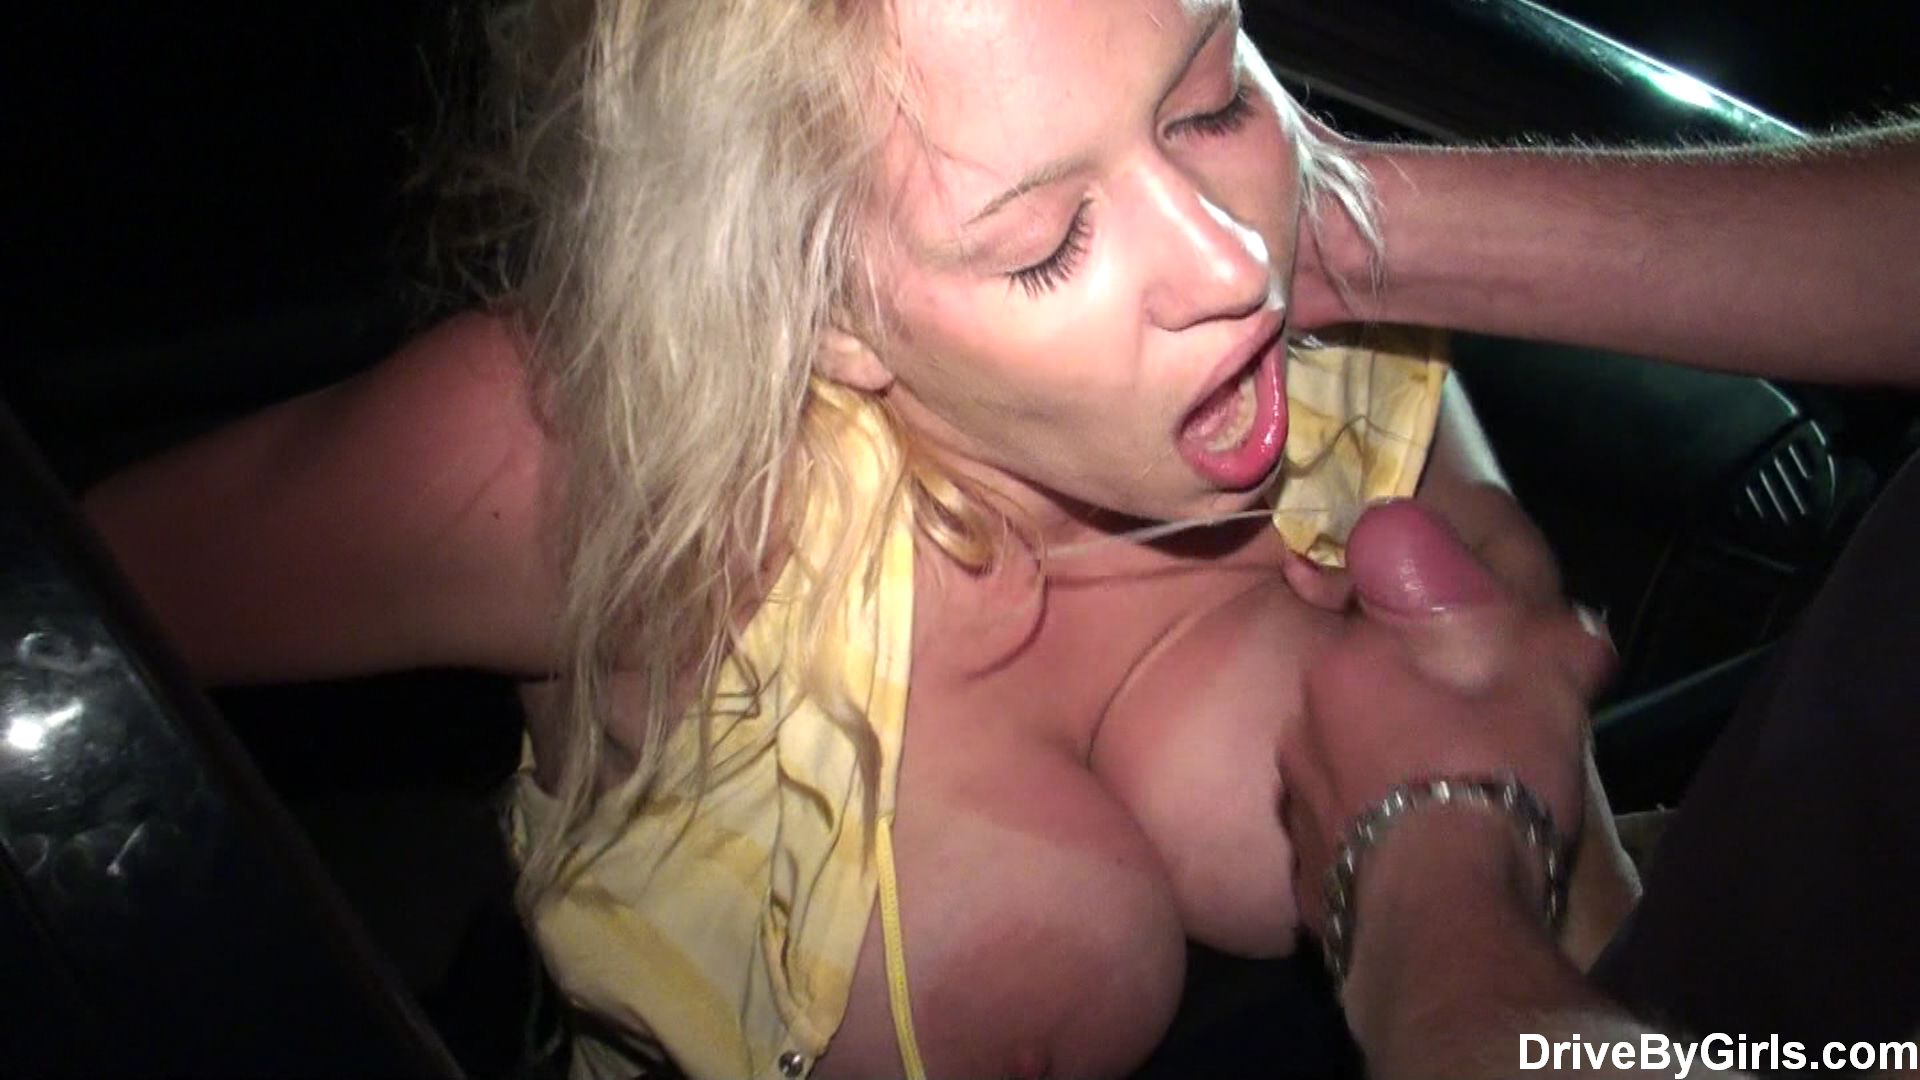 Dogging milf does as she's told